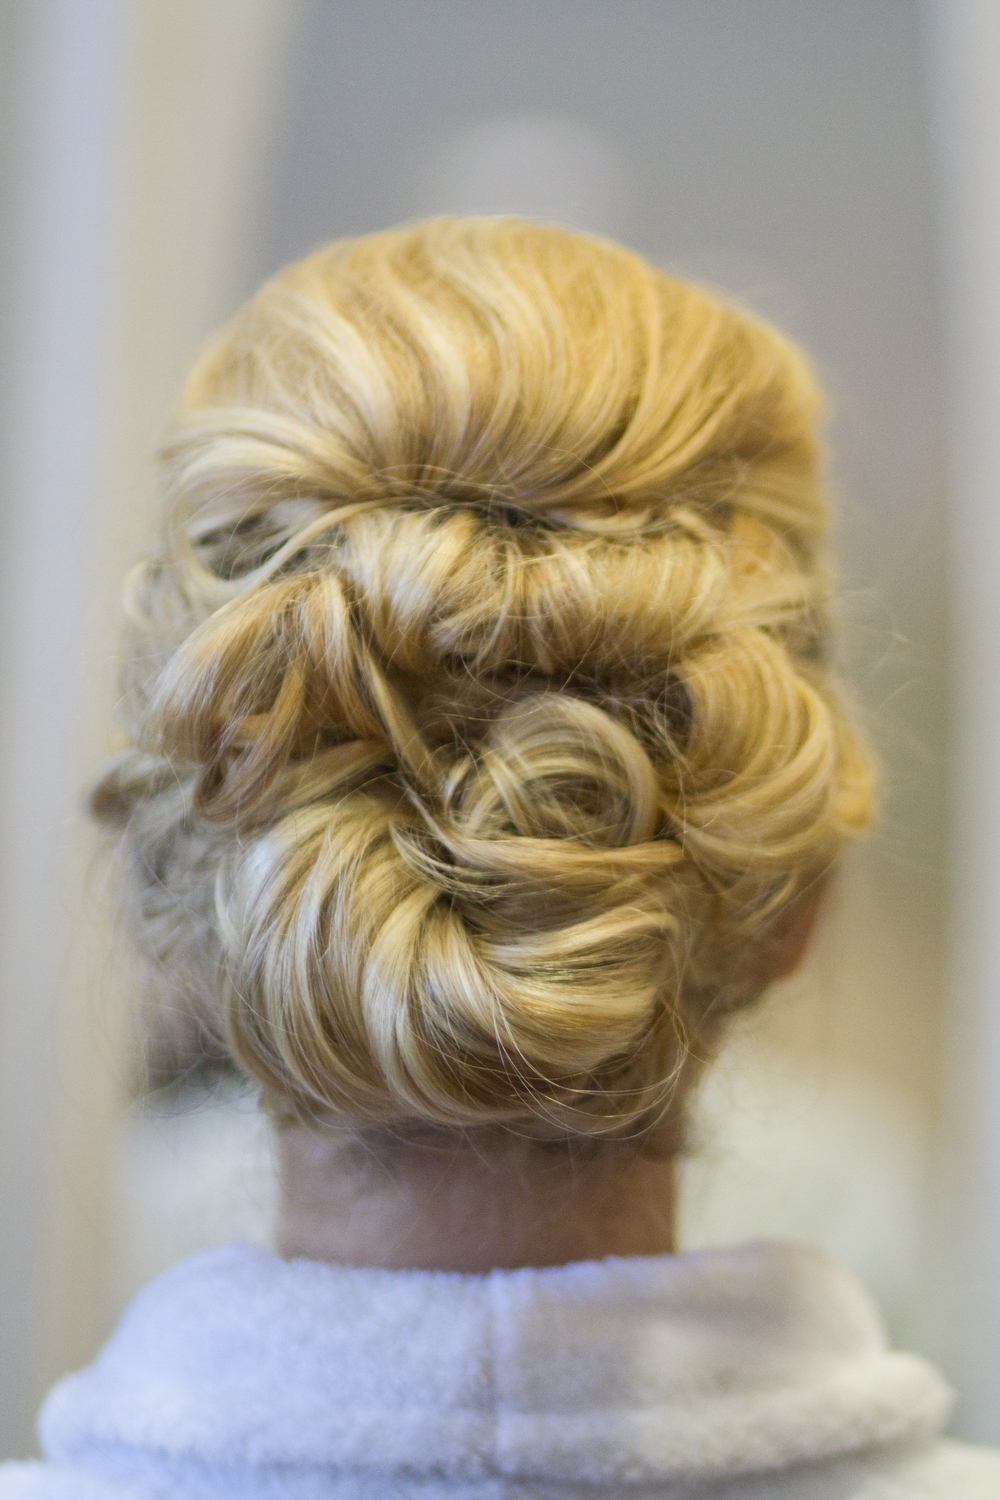 Wedding Day Hair Messy Curls Up-do Hairstyle